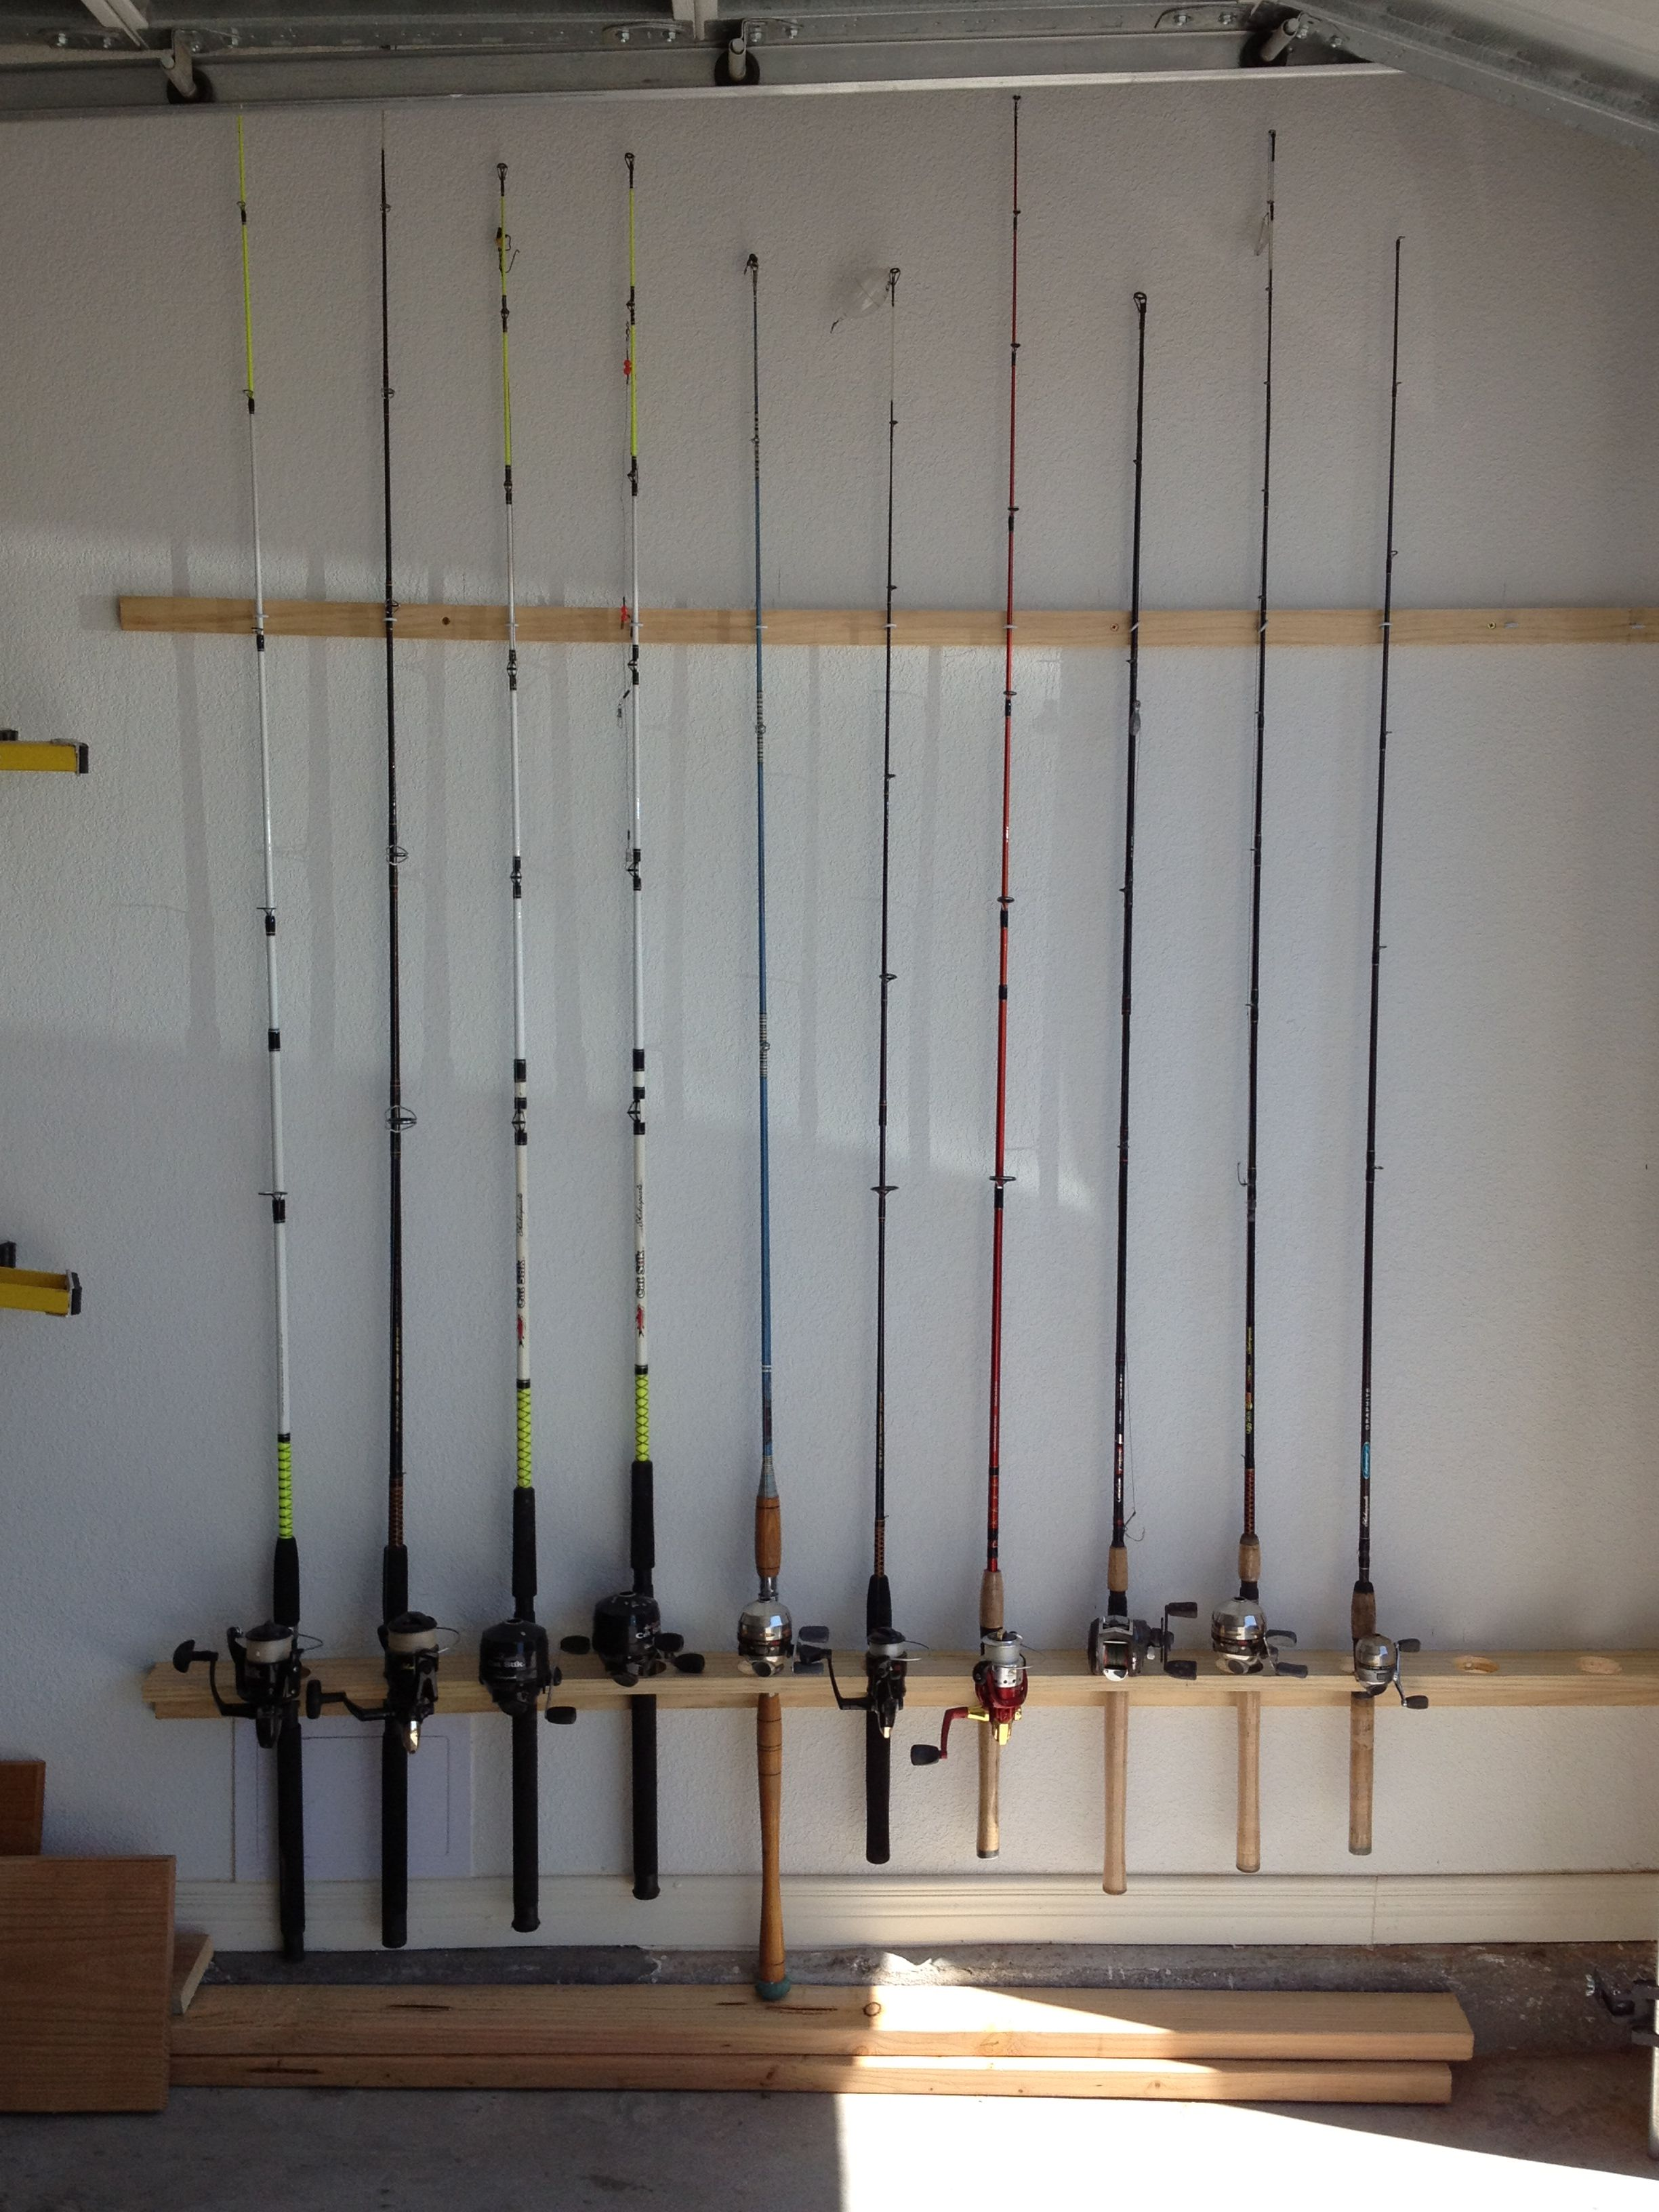 Diy fishing rod holder for the garage home pinterest for Homemade fishing rod holders